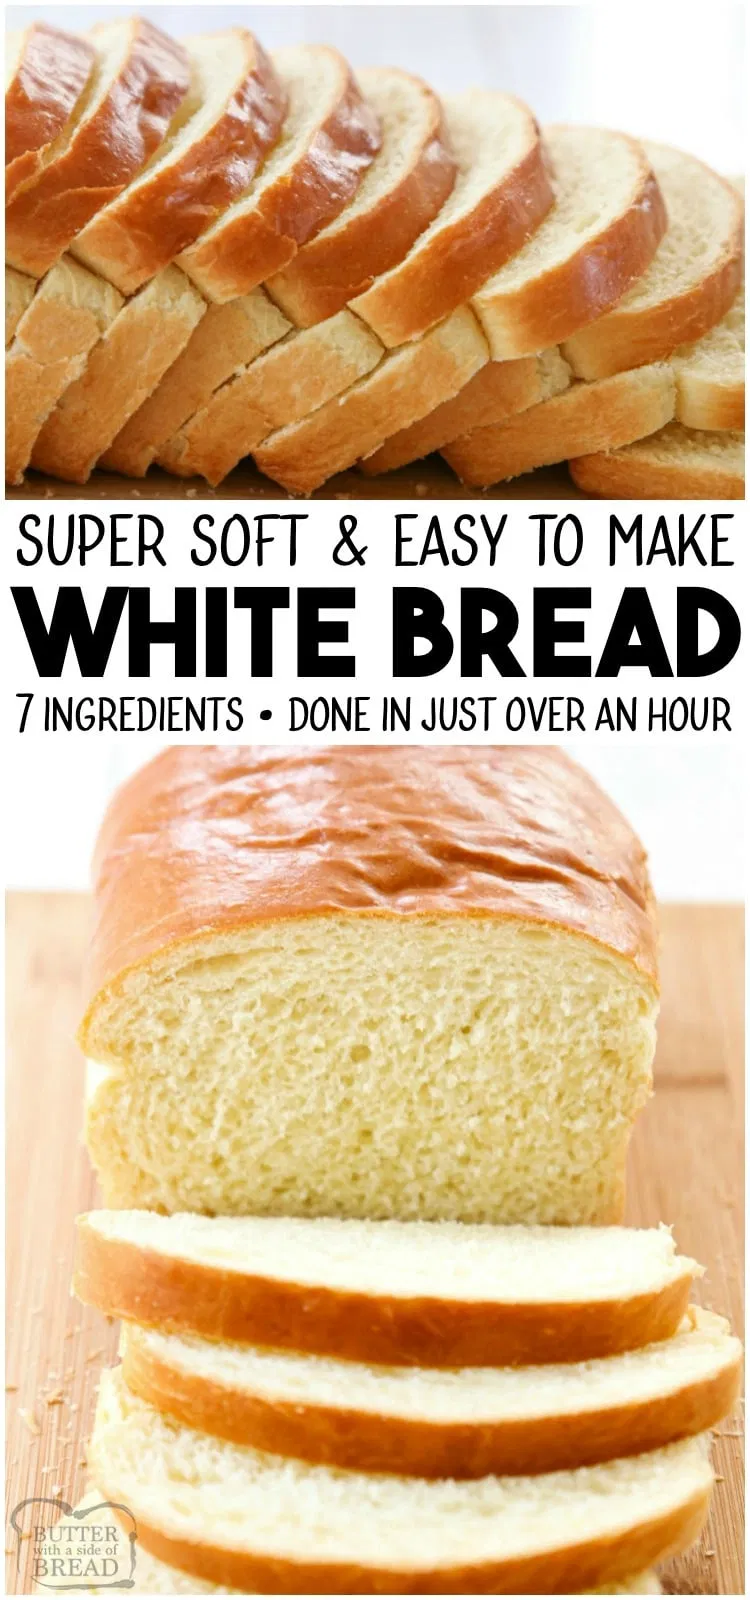 White Bread Recipe Is Made With Basic Ingredients Detailed Instructions Showing How To Make B Bread Recipes Homemade Easy White Bread Recipe Homemade Recipes